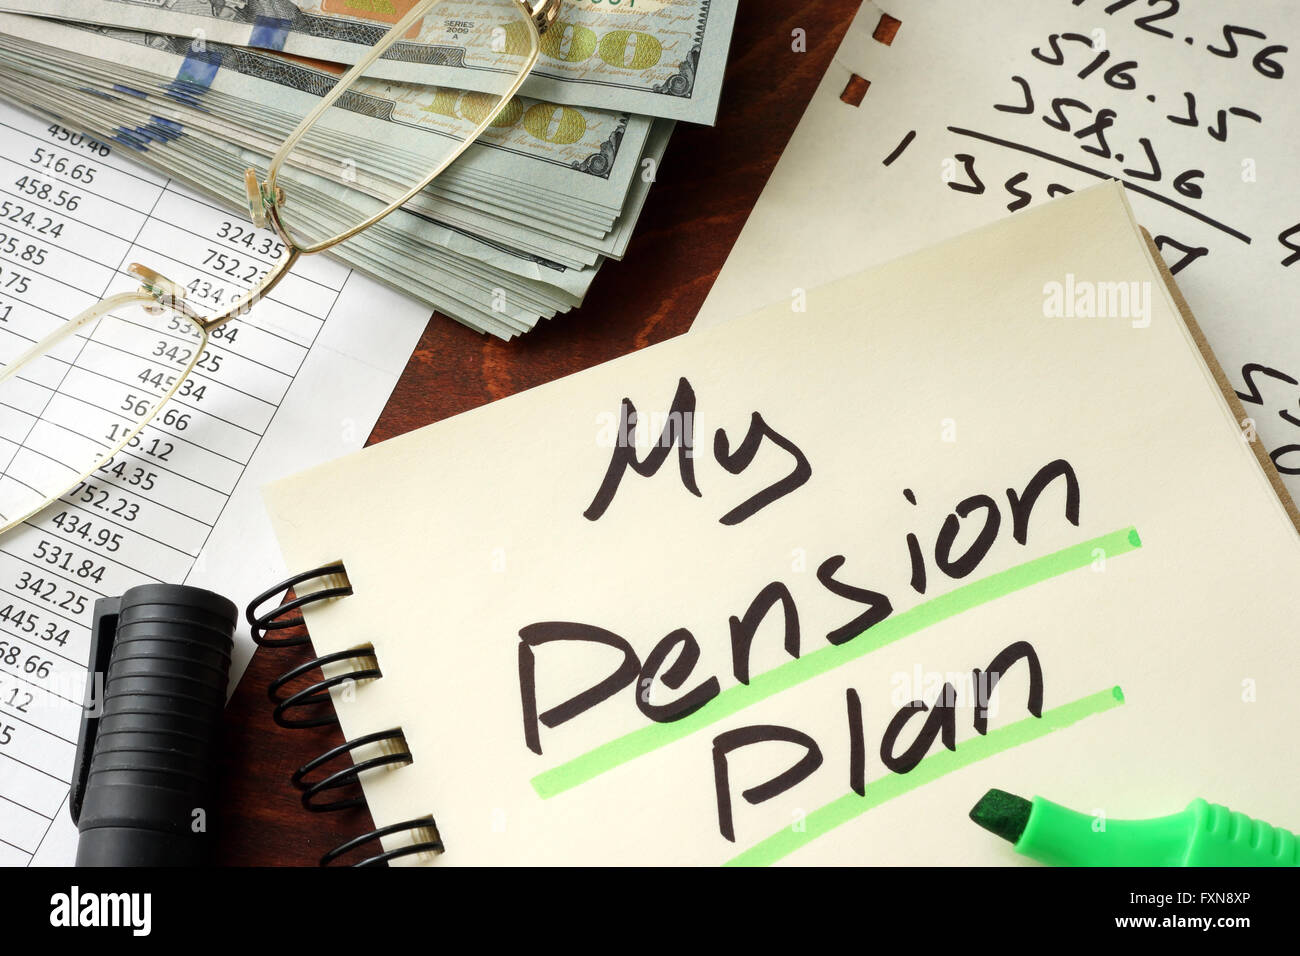 Pension plan written on a notepad. Savings concept. - Stock Image